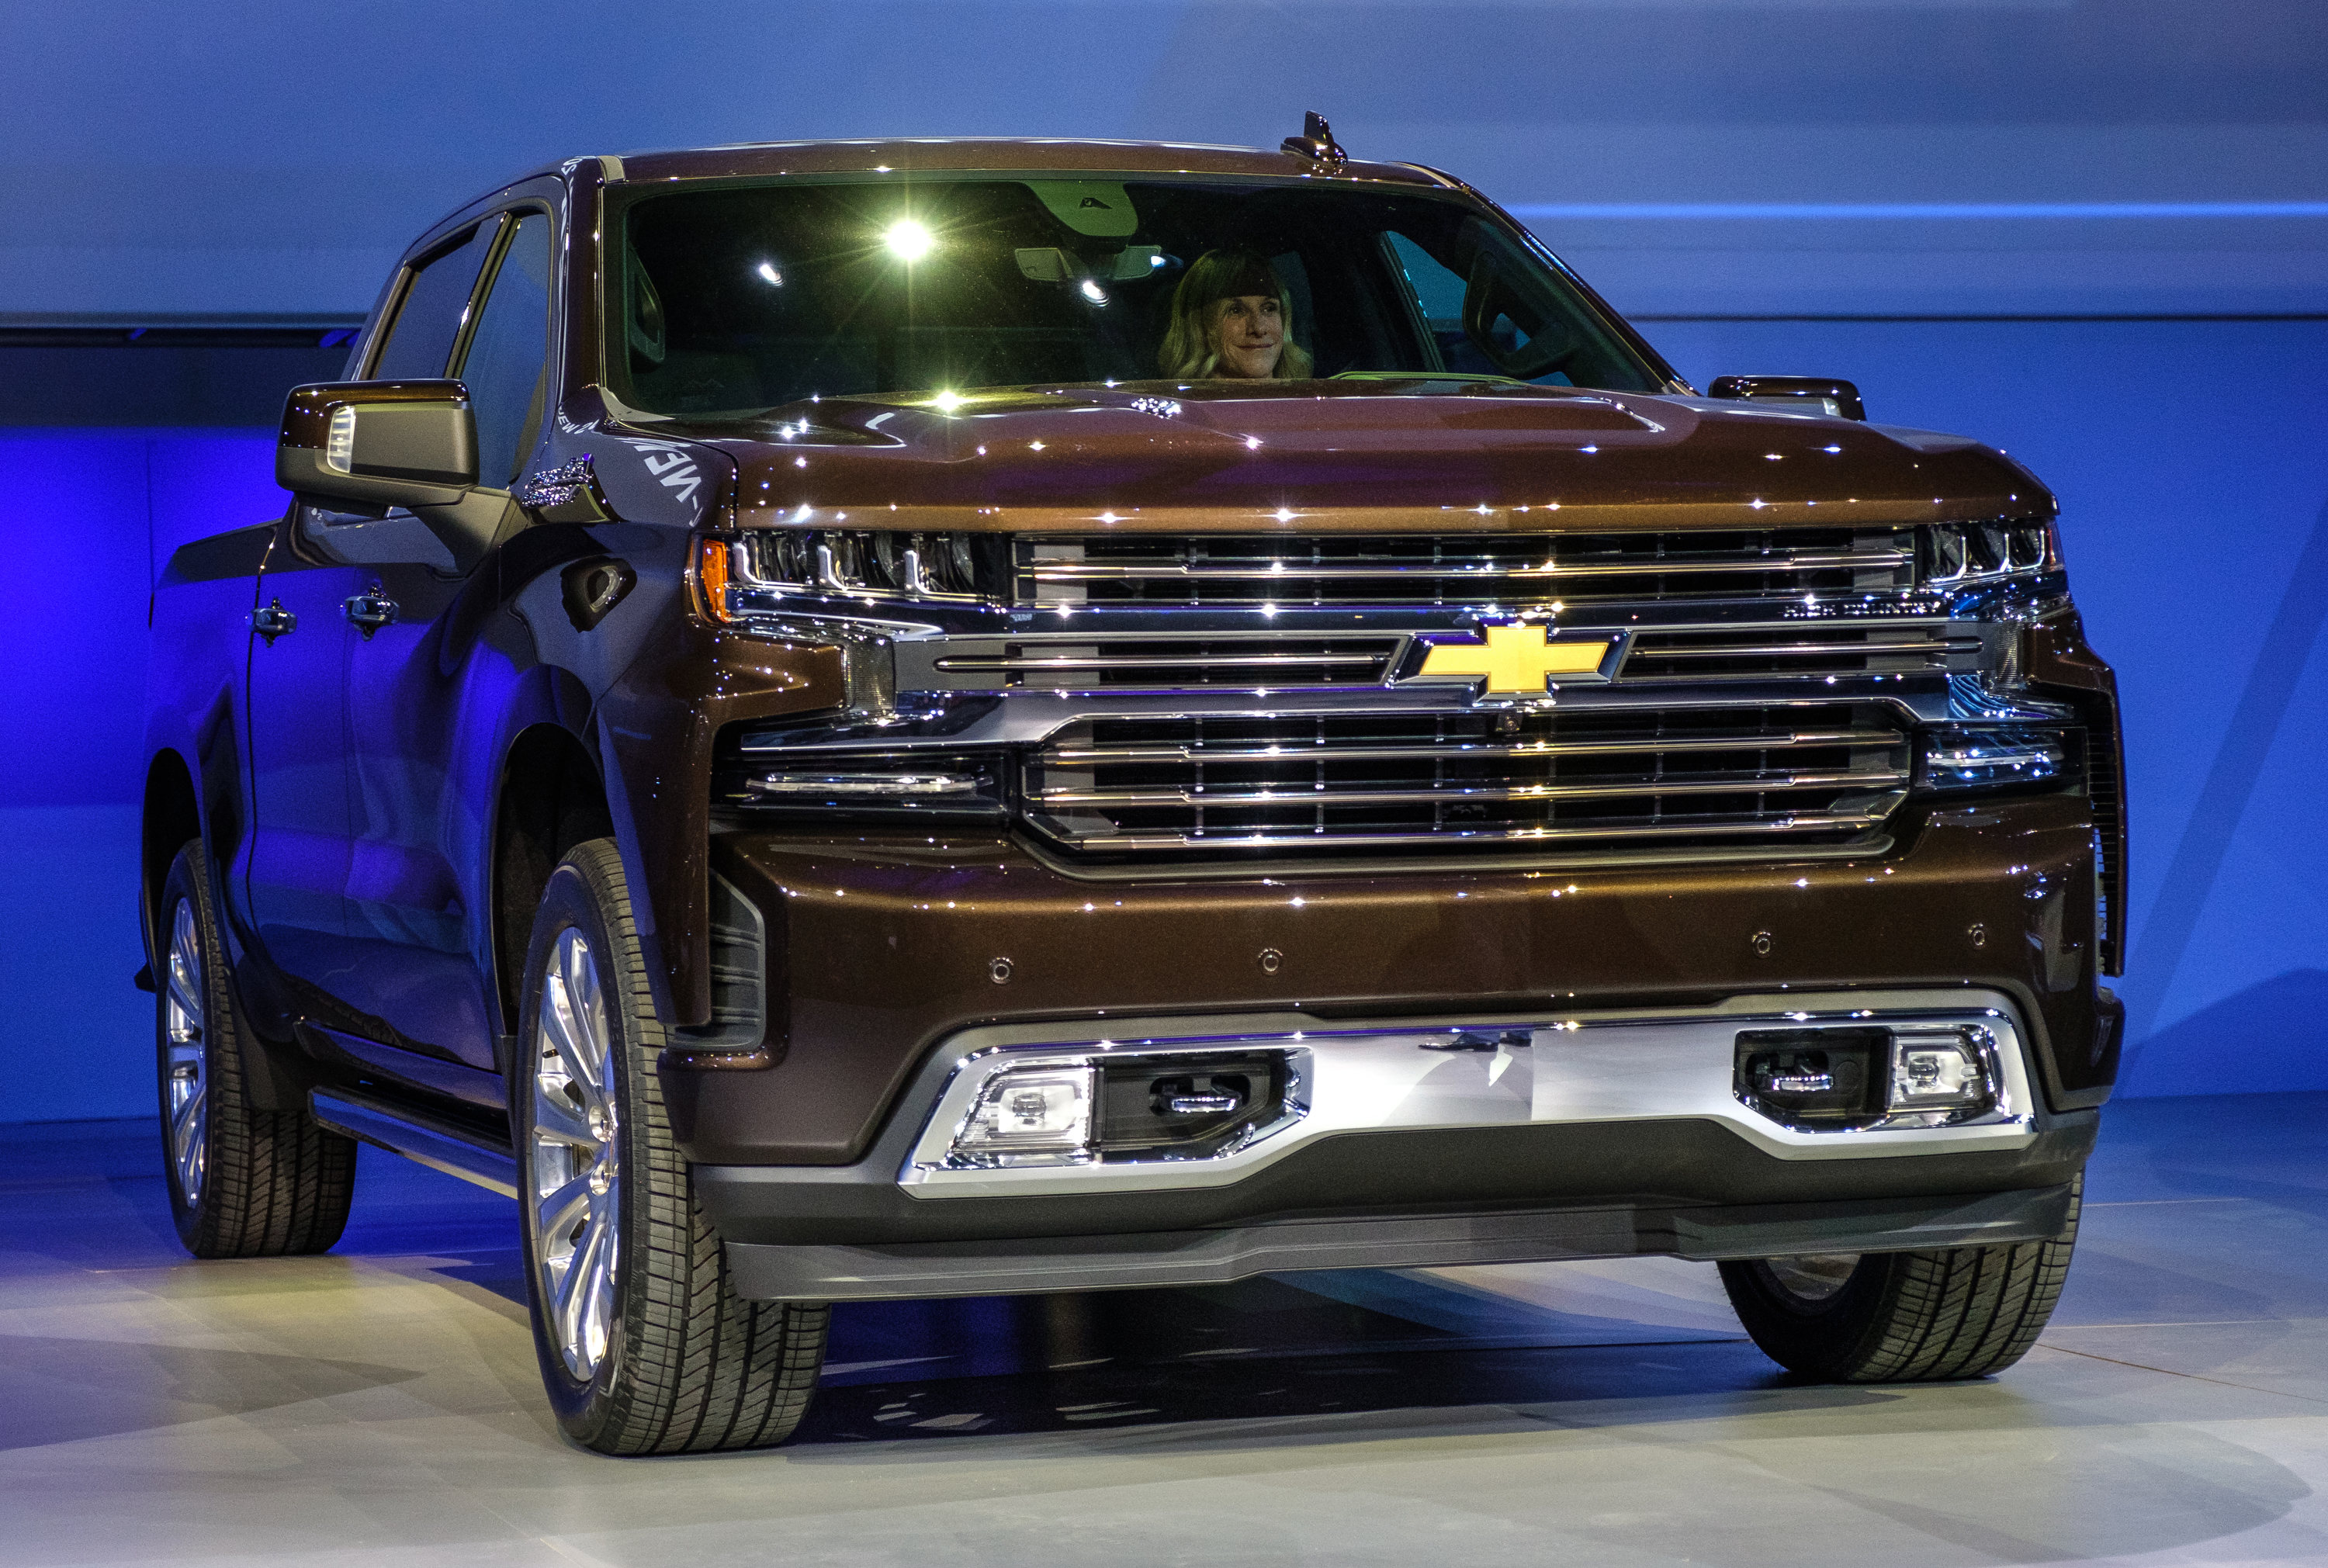 2019 Chevy Silverado cuts up to 450 lbs. with aluminum ...